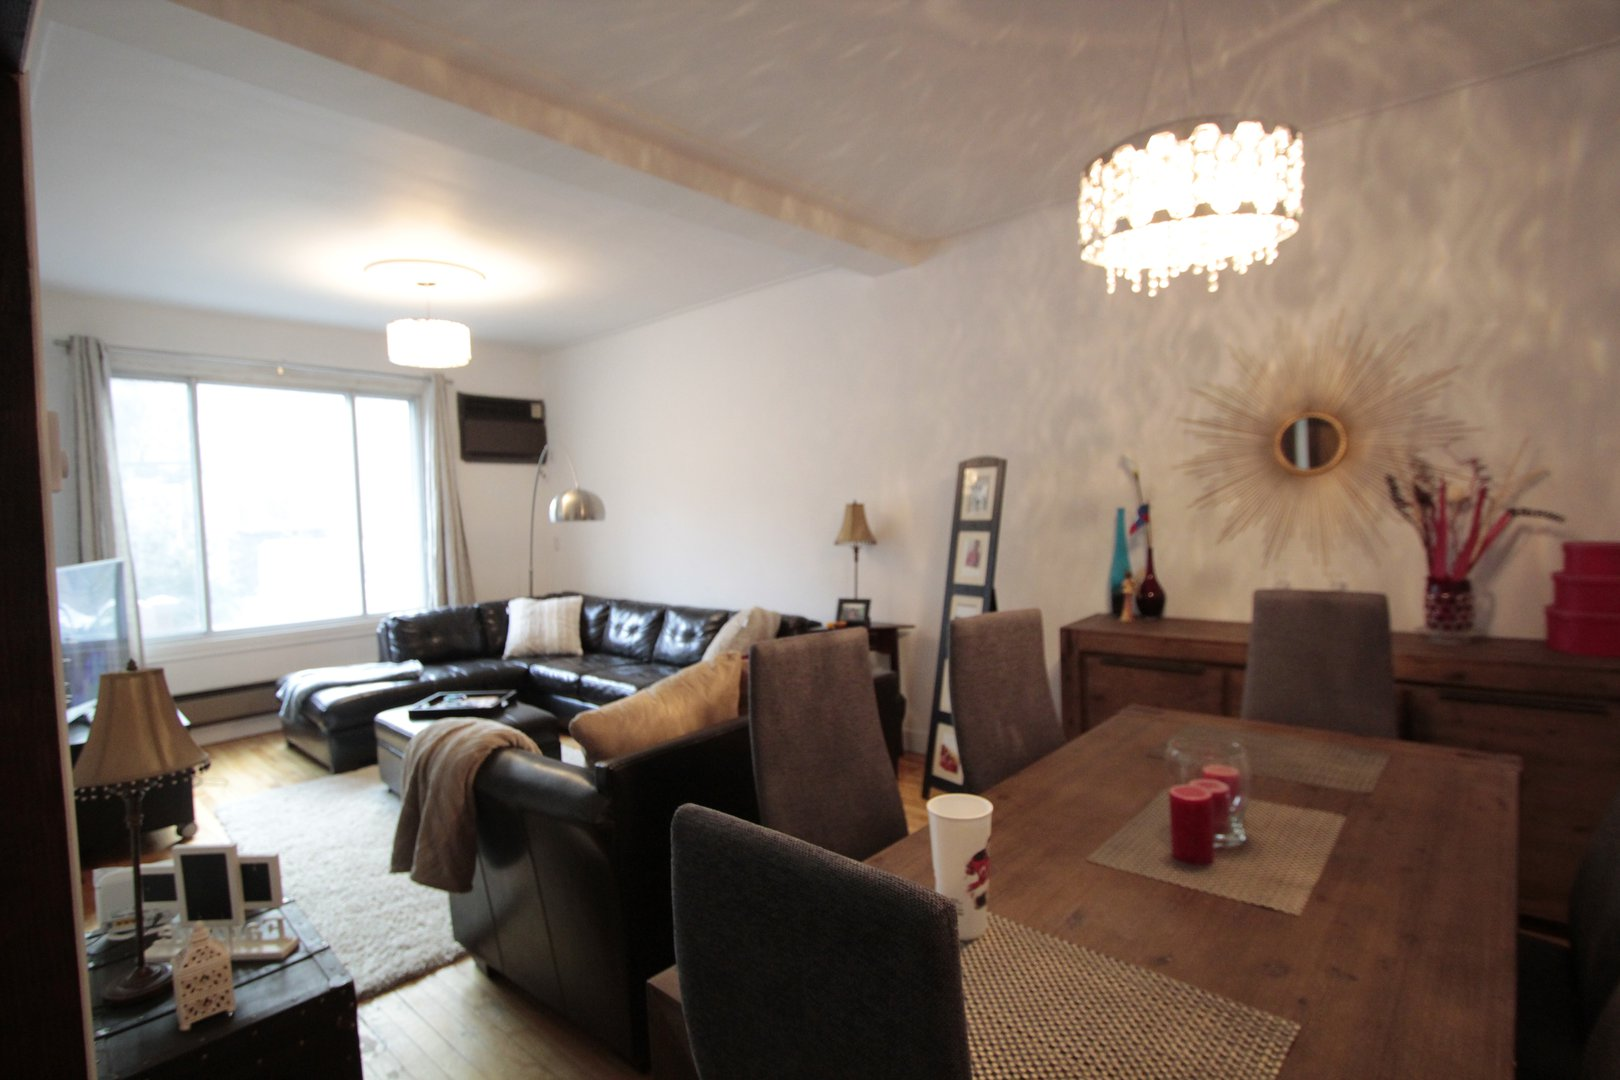 Apartment for rent at 4649 Avenue Clanranald, Montréal, QC. This is the living room with natural light, hardwood floor, beamed ceiling and notable chandelier.